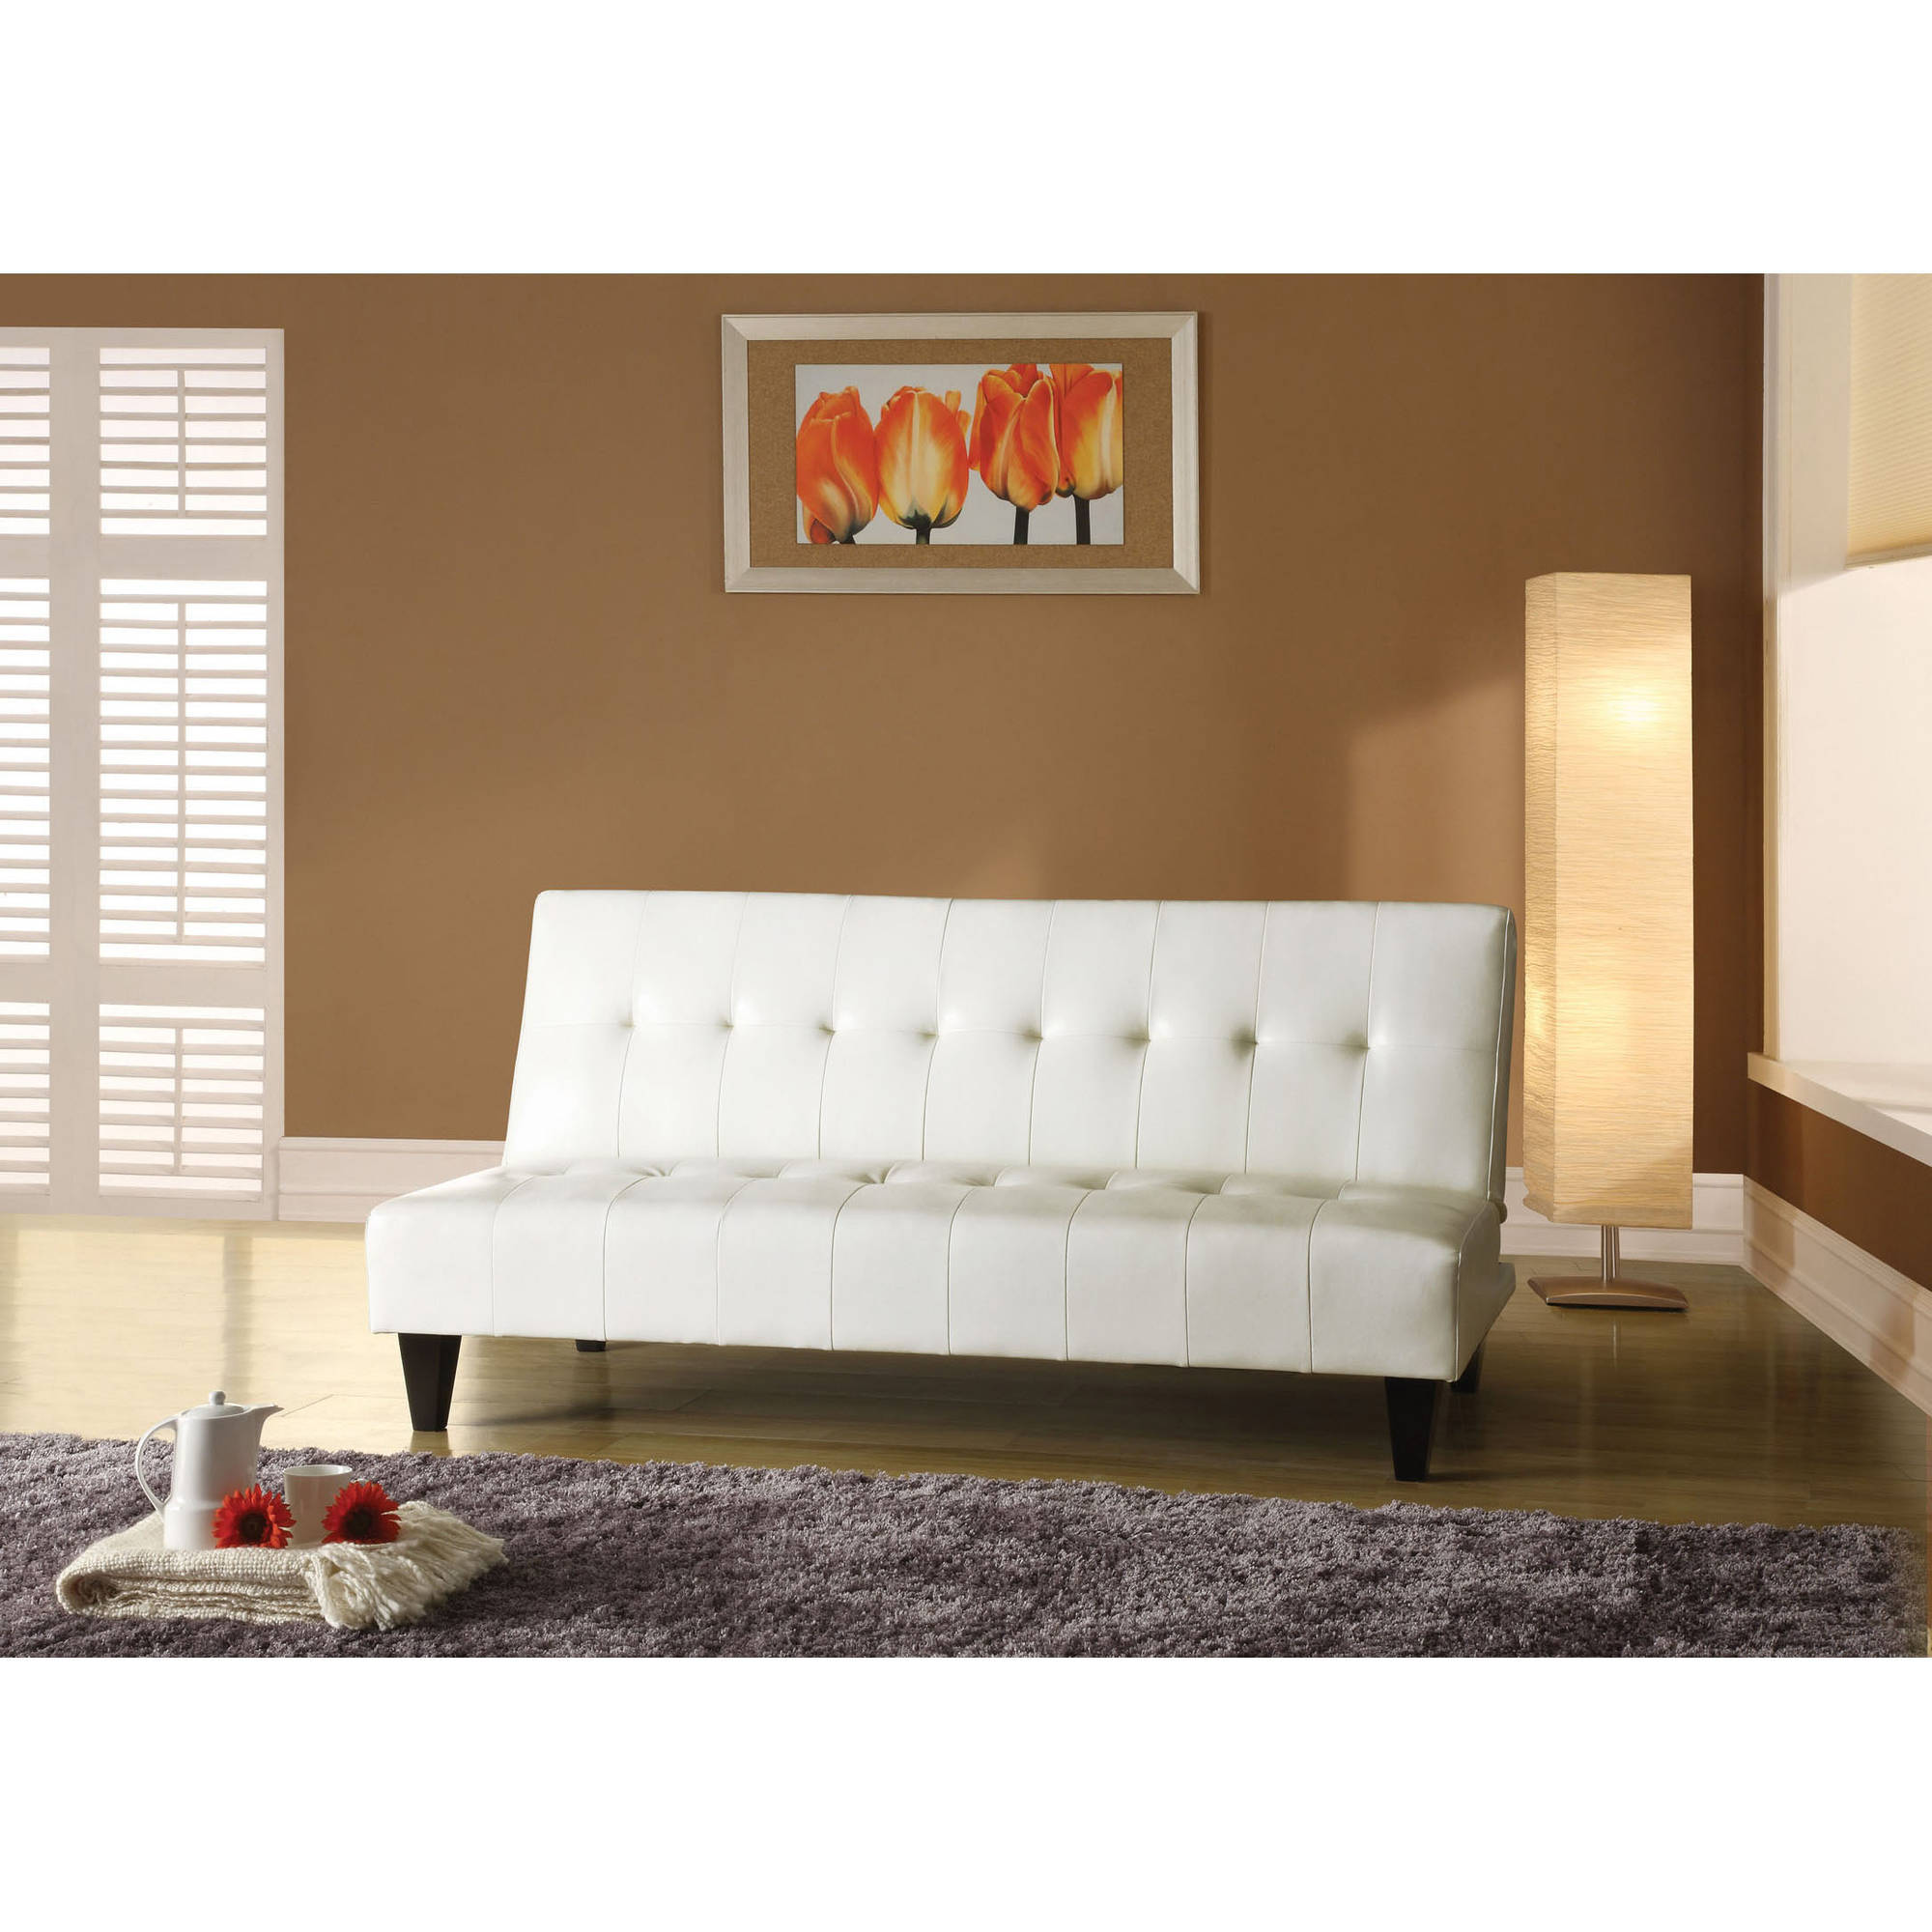 espan pleather bed us white faux leather brown couch pictures sofa lovely